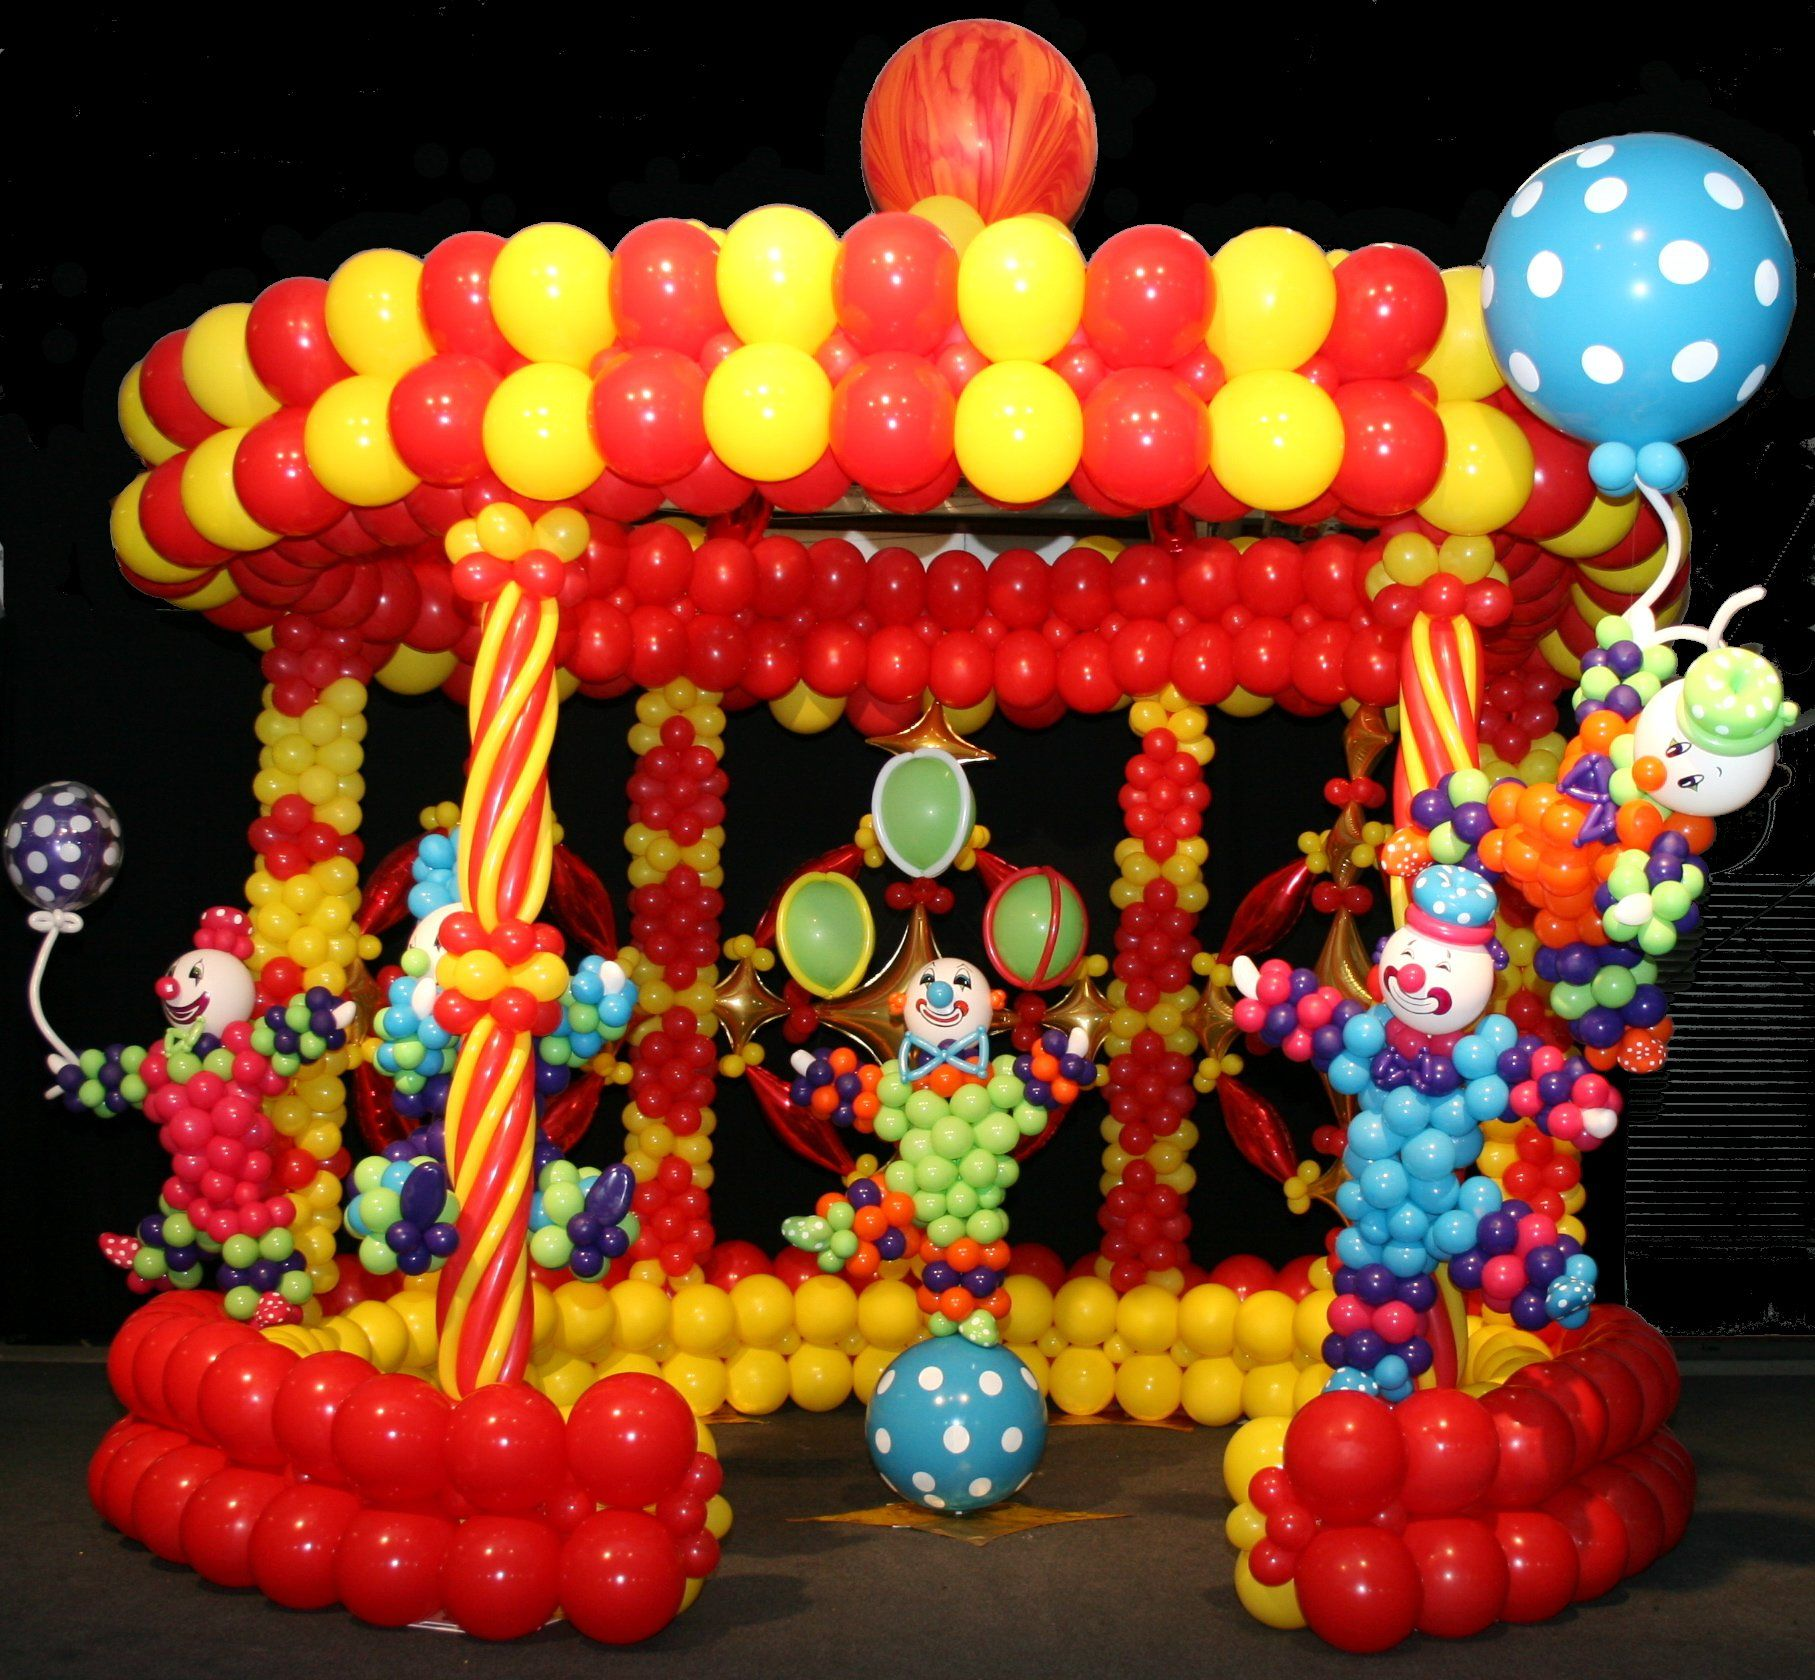 balloon sculpture ideas home sue bowler dvd 39 s shop balloon art gallery sculptures pinterest. Black Bedroom Furniture Sets. Home Design Ideas